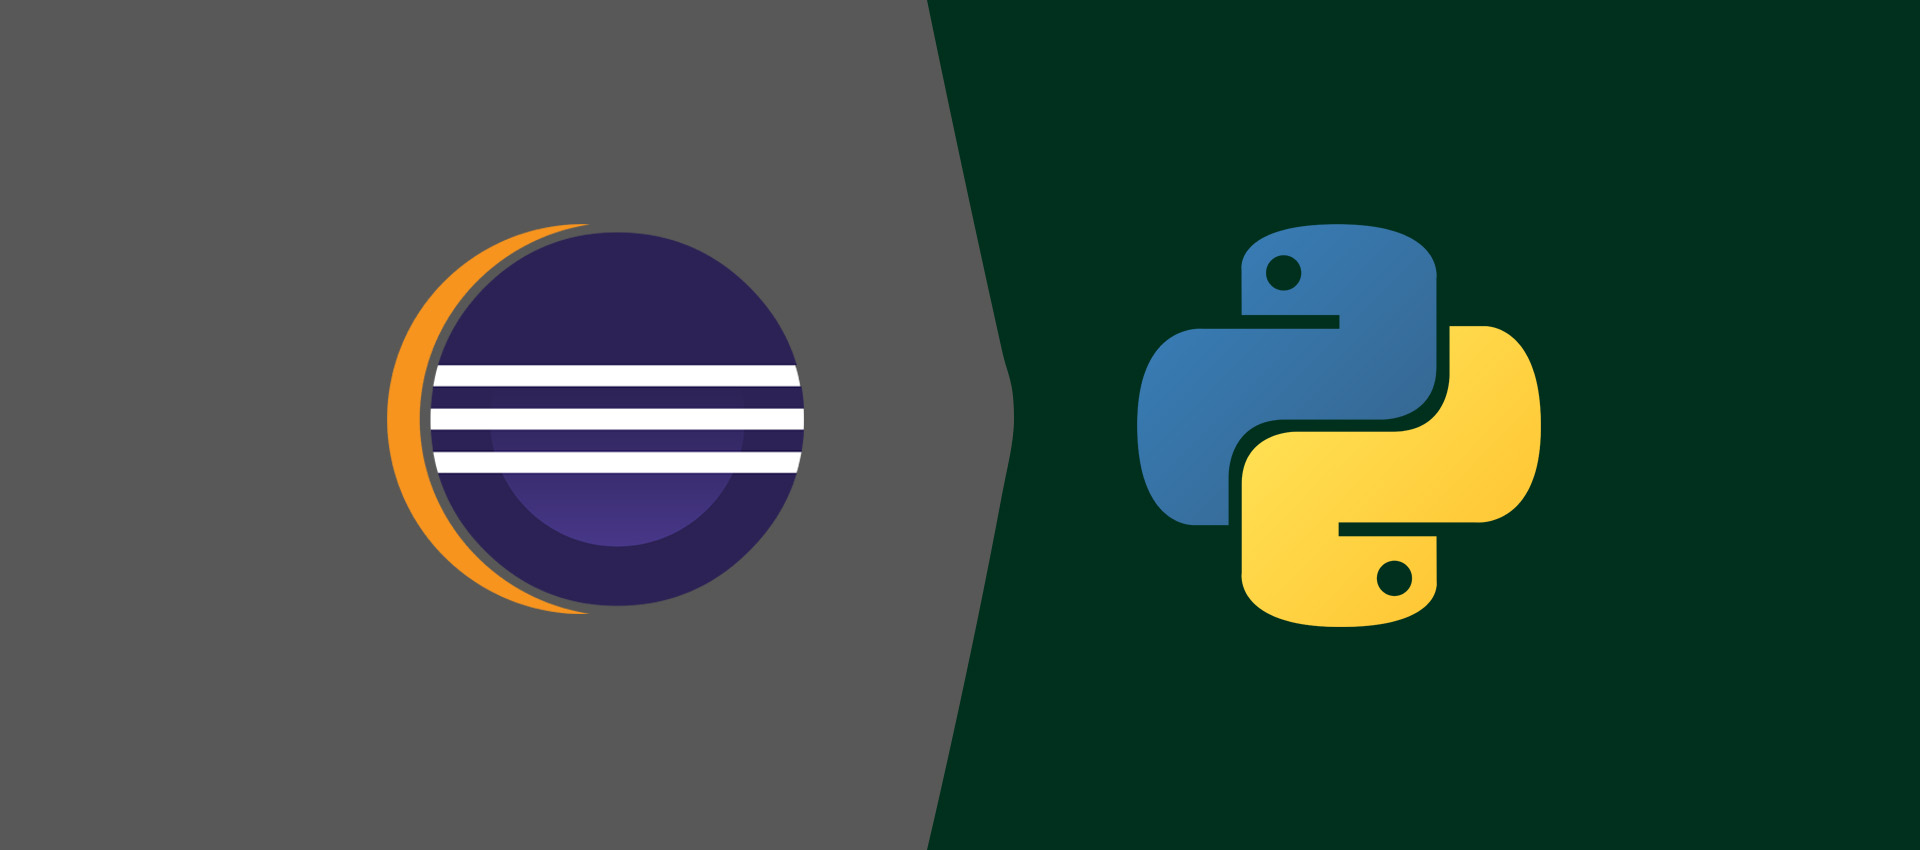 How To Install Eclipse For Python On Ubuntu